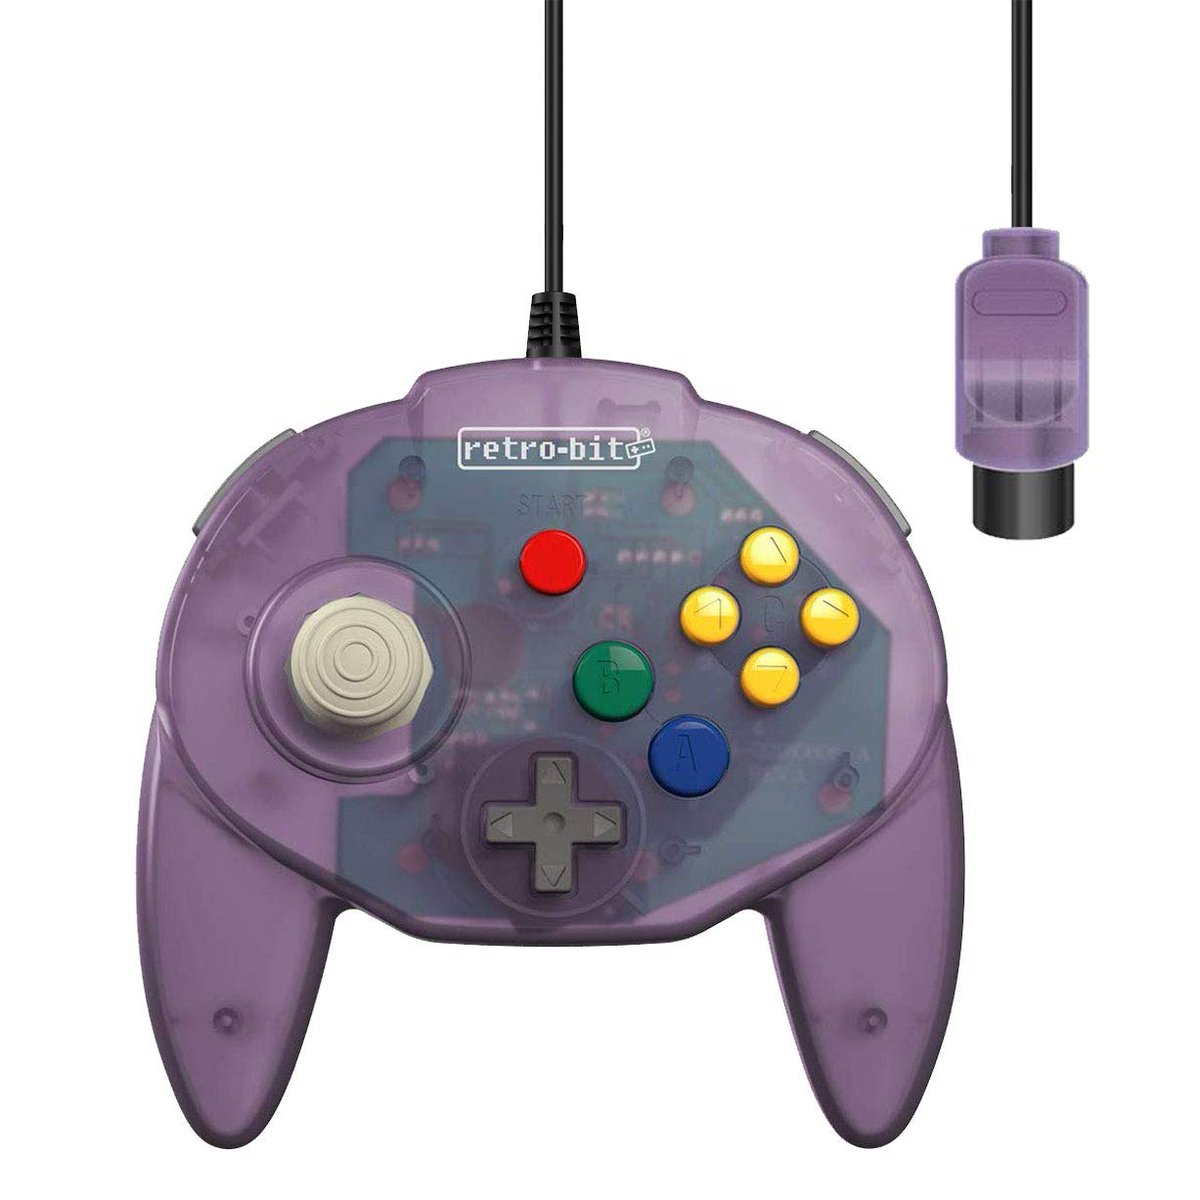 Atomic Purple Retro-Bit Tribute 64 Wired N64 Controller for Nintendo 64 is $21.10 on Amazon 2